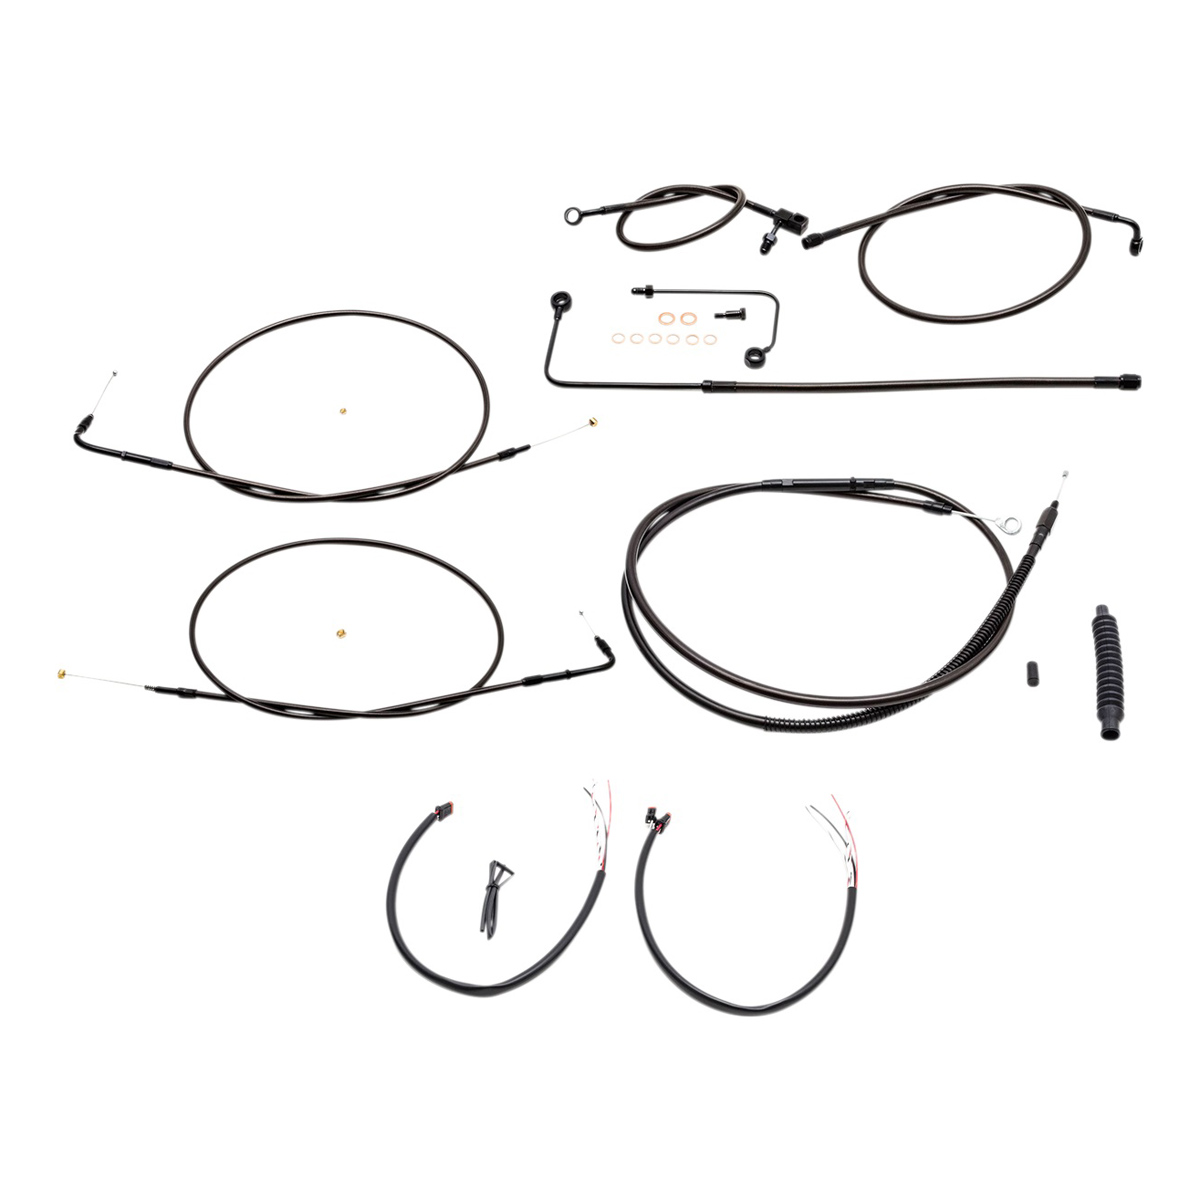 LA Choppers Midnight Complete Cable/Line/Wiring Handlebar Kit for 18″-20″ Bars on Models with ABS